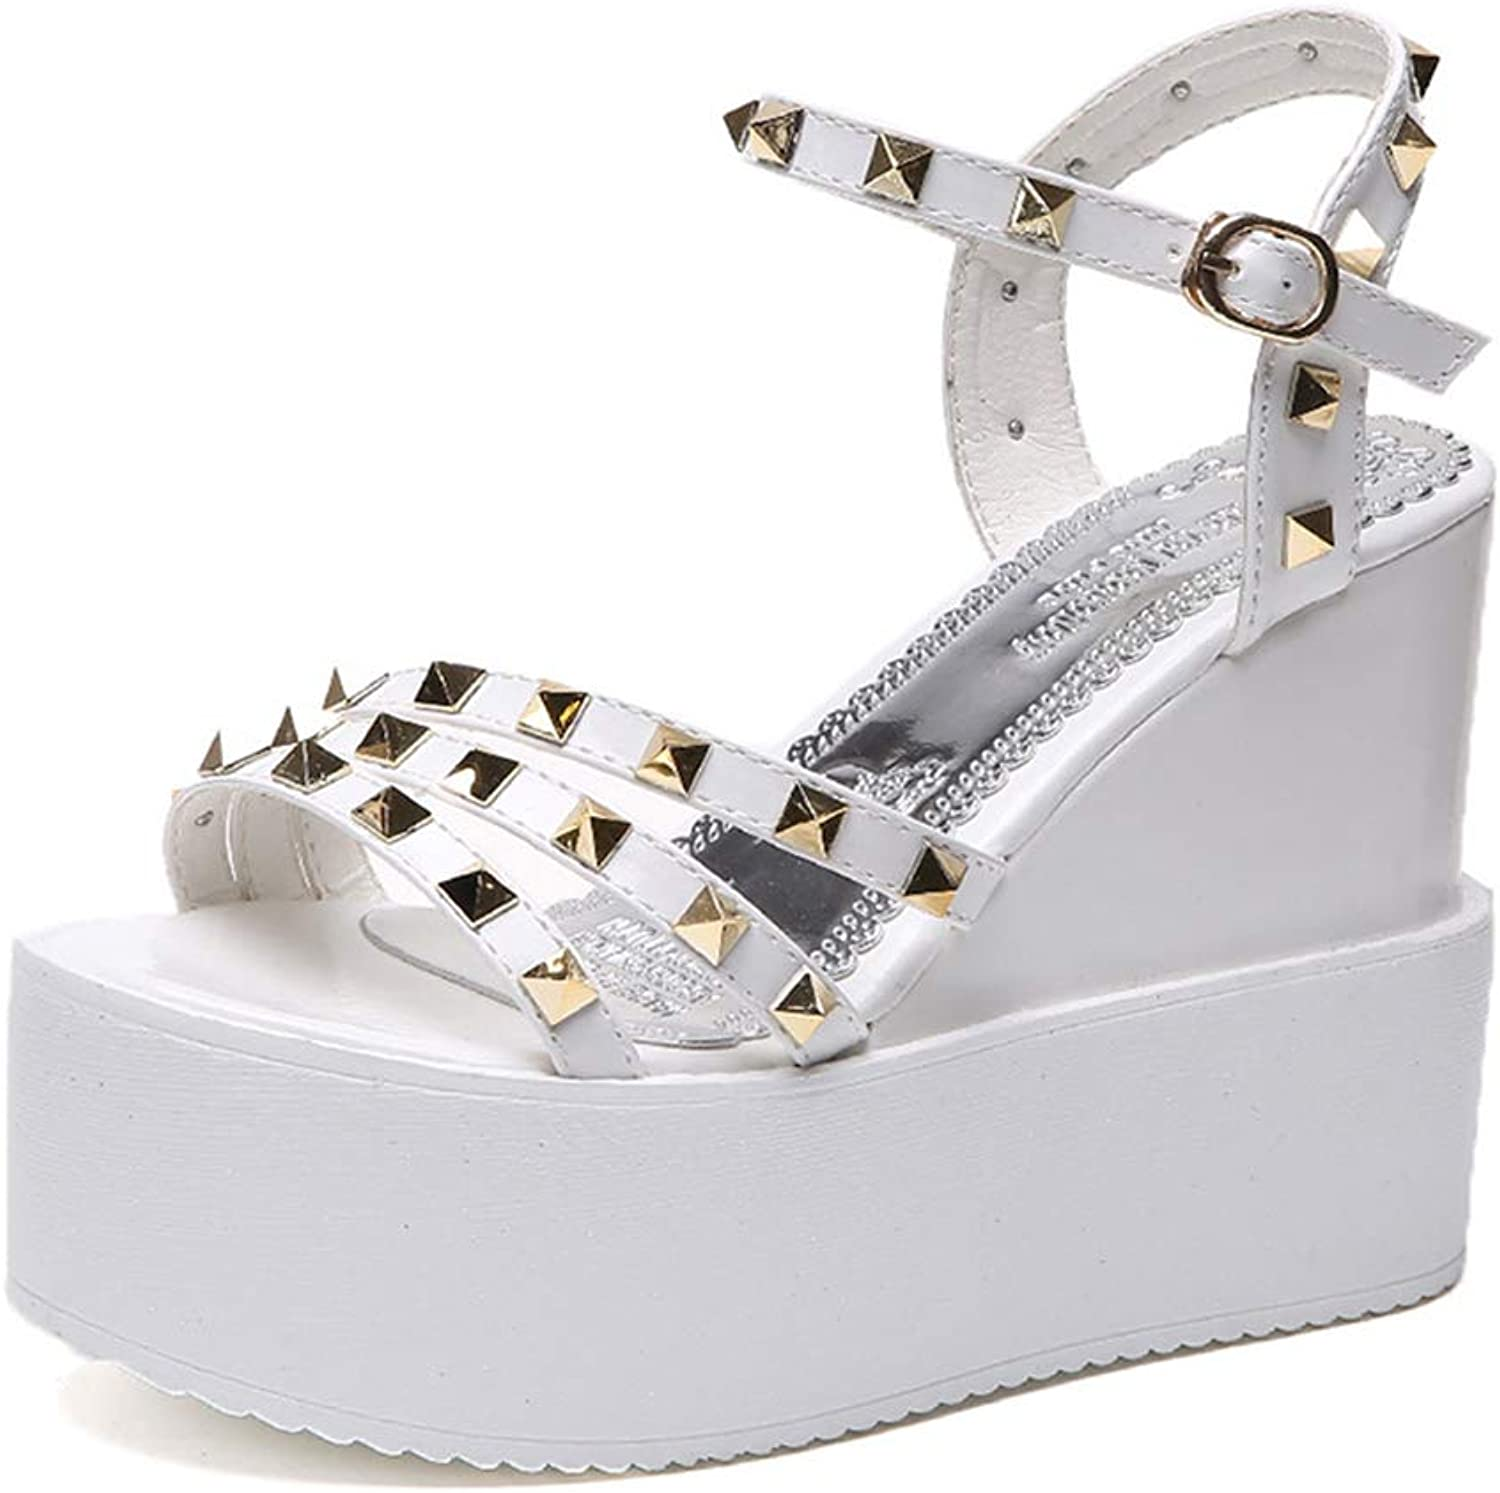 F1rst Rate Womens Platform Wedges Open Toe High Heel Sandals with Ankle Strap